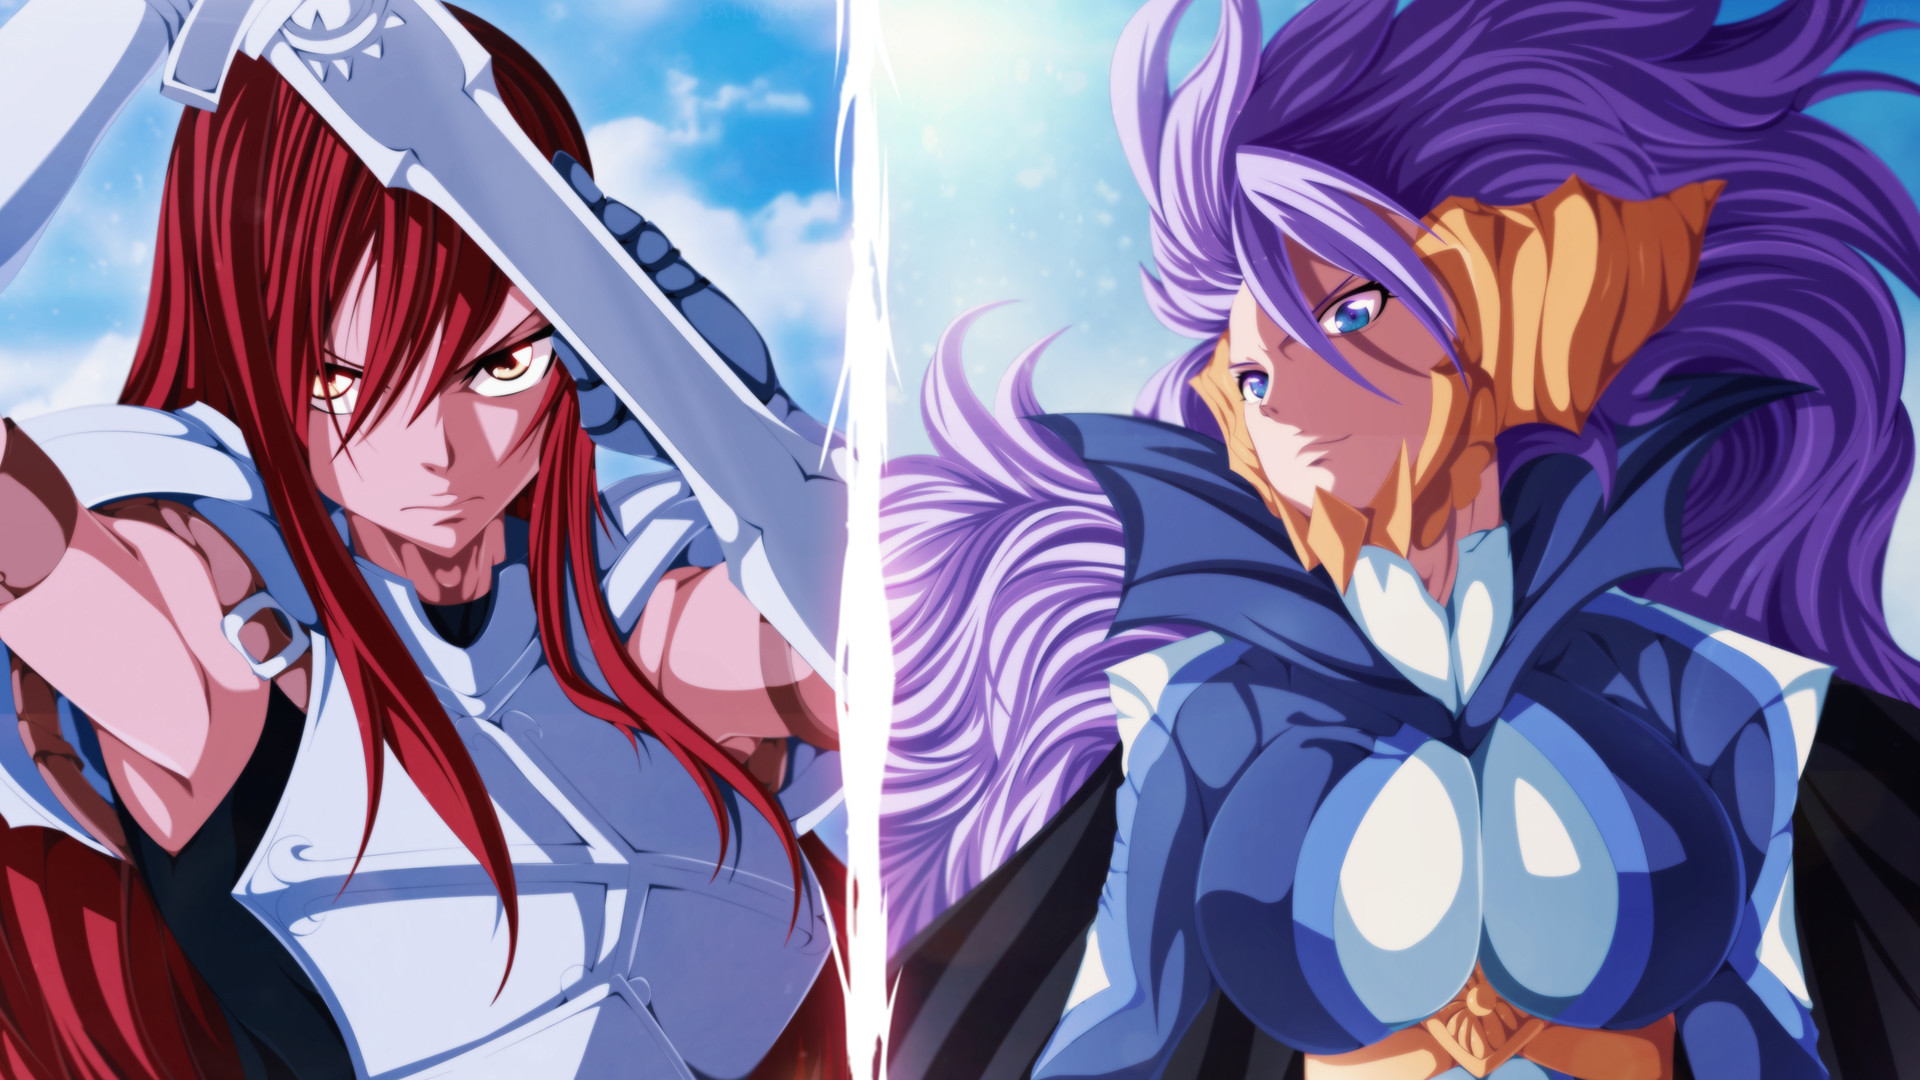 1920x1080 erza scarlet and mirajane staruss satal soul sitri fairy tail